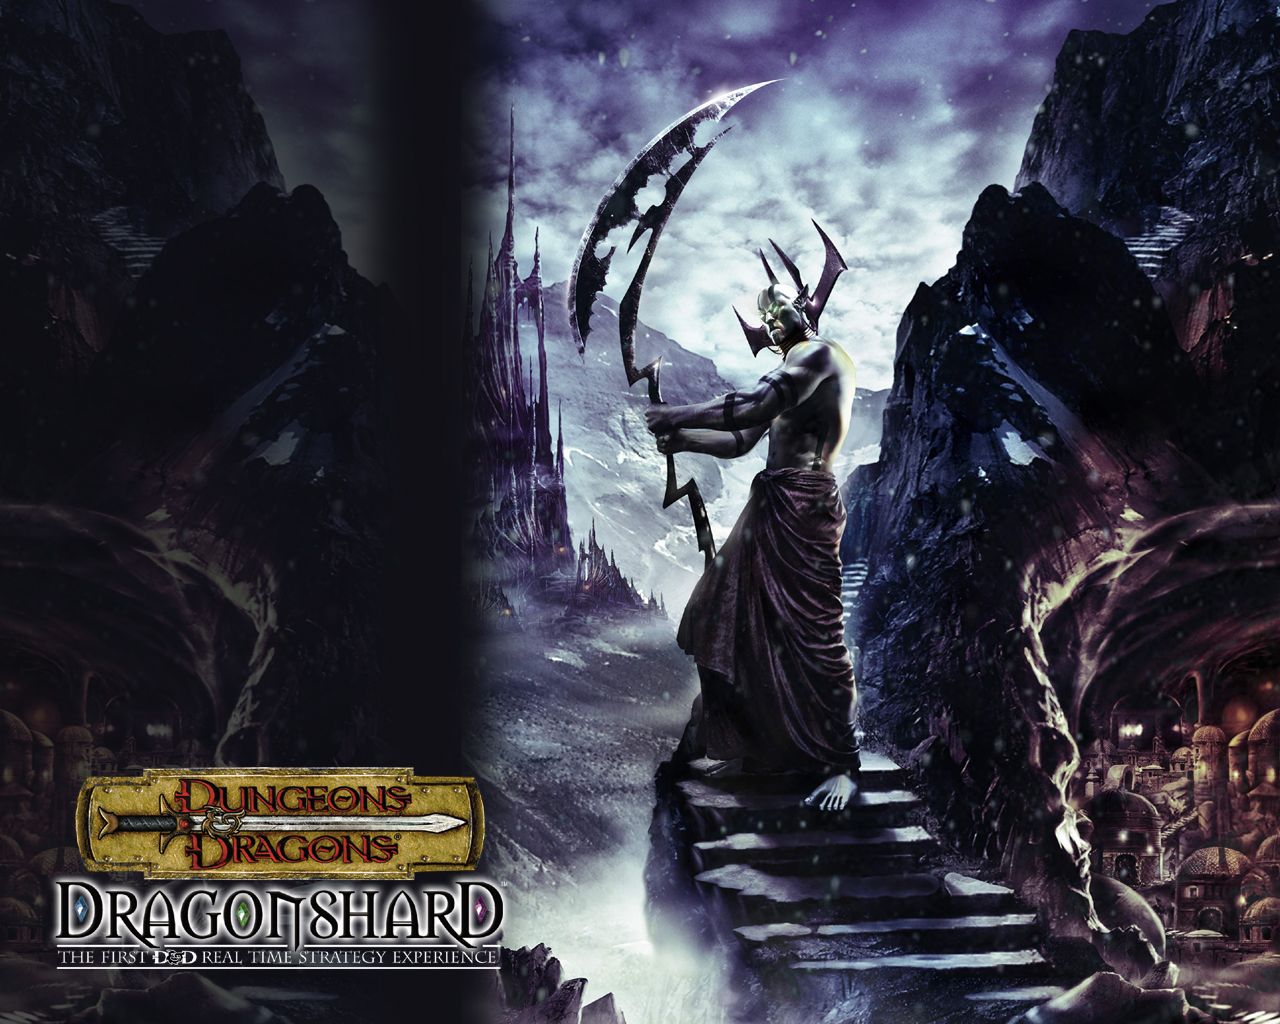 d&d dark elf drow eberron Wallpaper, Satros campione degli Umbragen Videogame: Dungeon & Dragons, Dragonshard (2005-09) © Atari, Wizards of the Coast & Hasbro